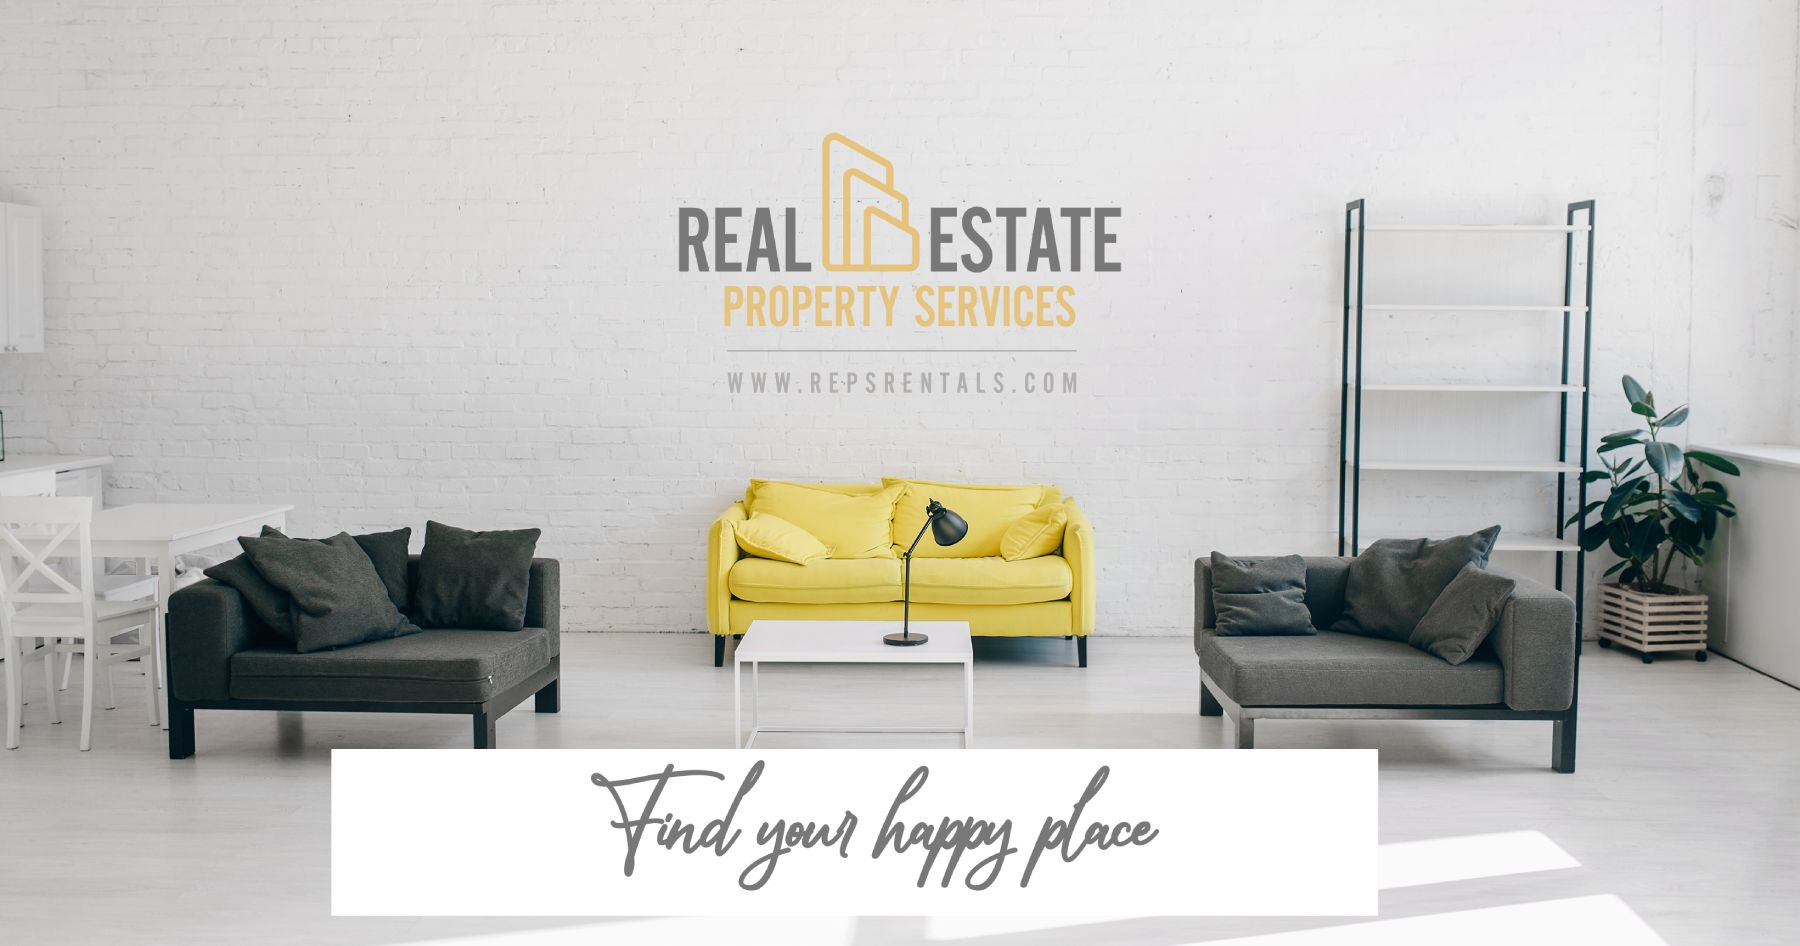 Property management serving the Central Valley and Bay Area